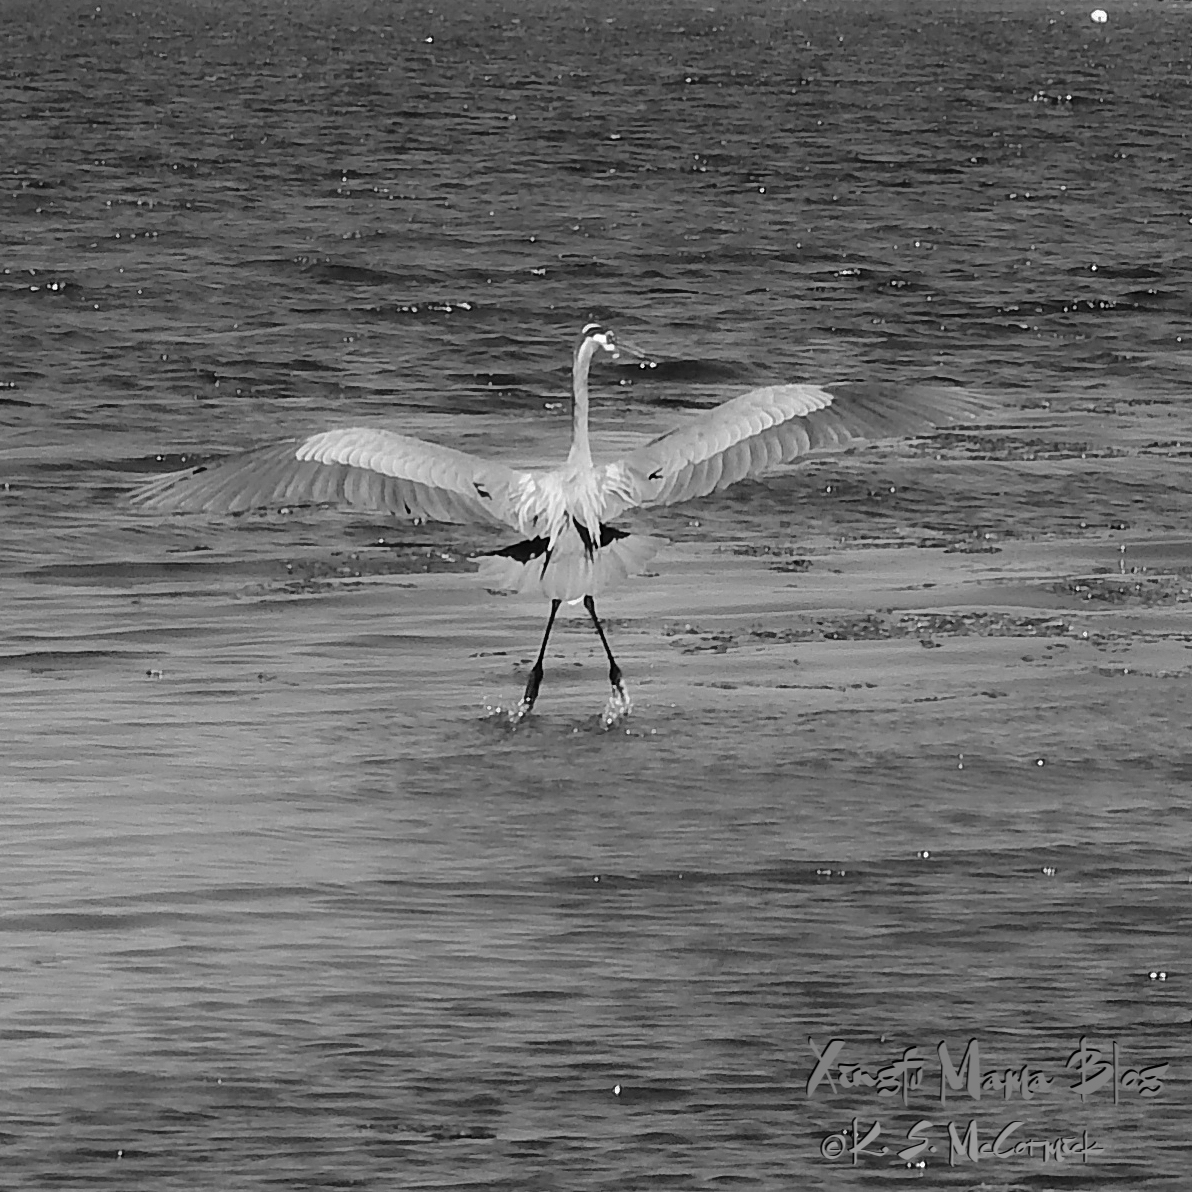 Great Blue heron with wings spread for take off, in Puget Sound, Washington State.